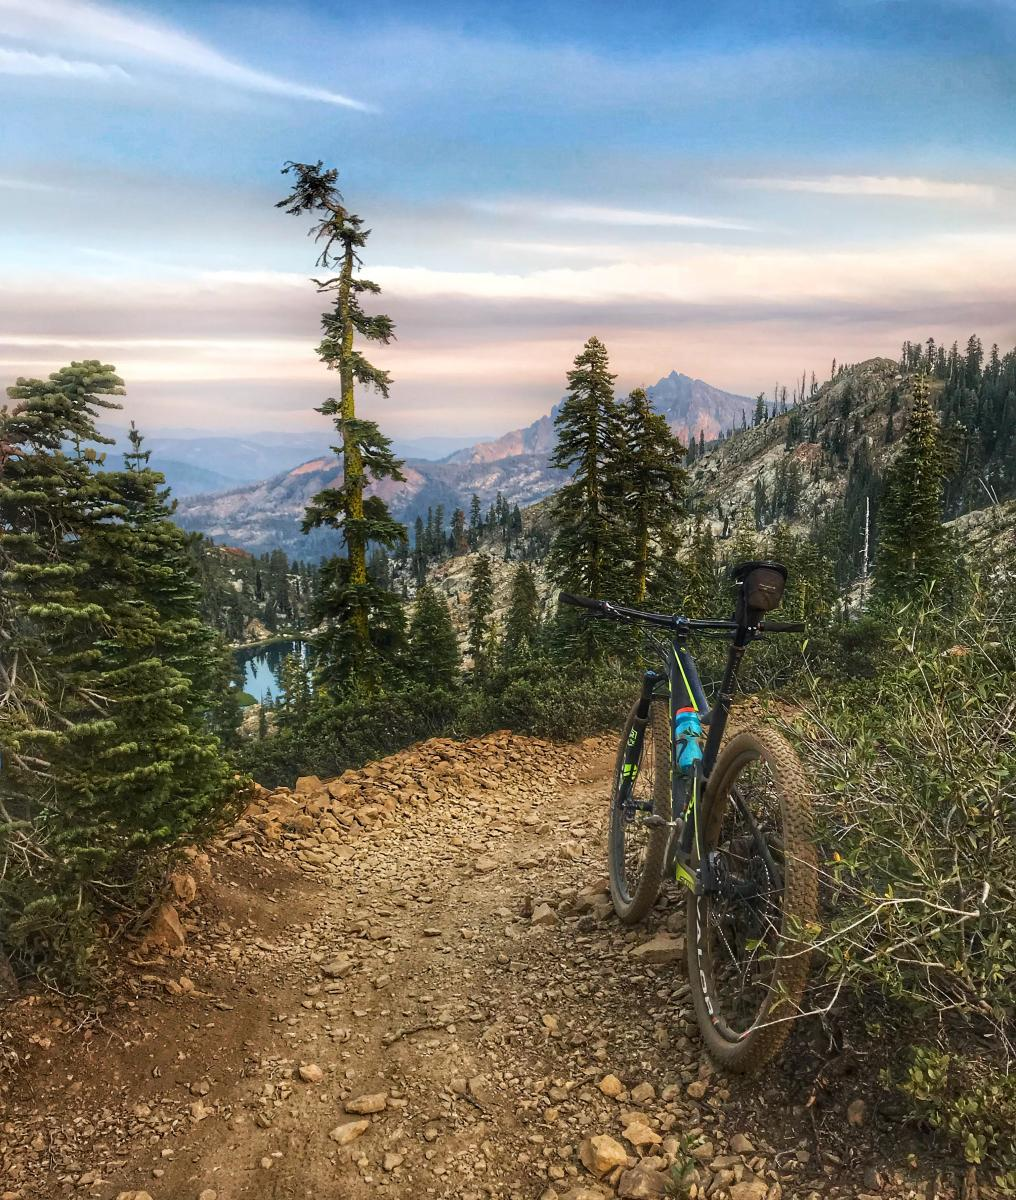 Downieville Downhill Mountain Bike Trail in Downieville, California on